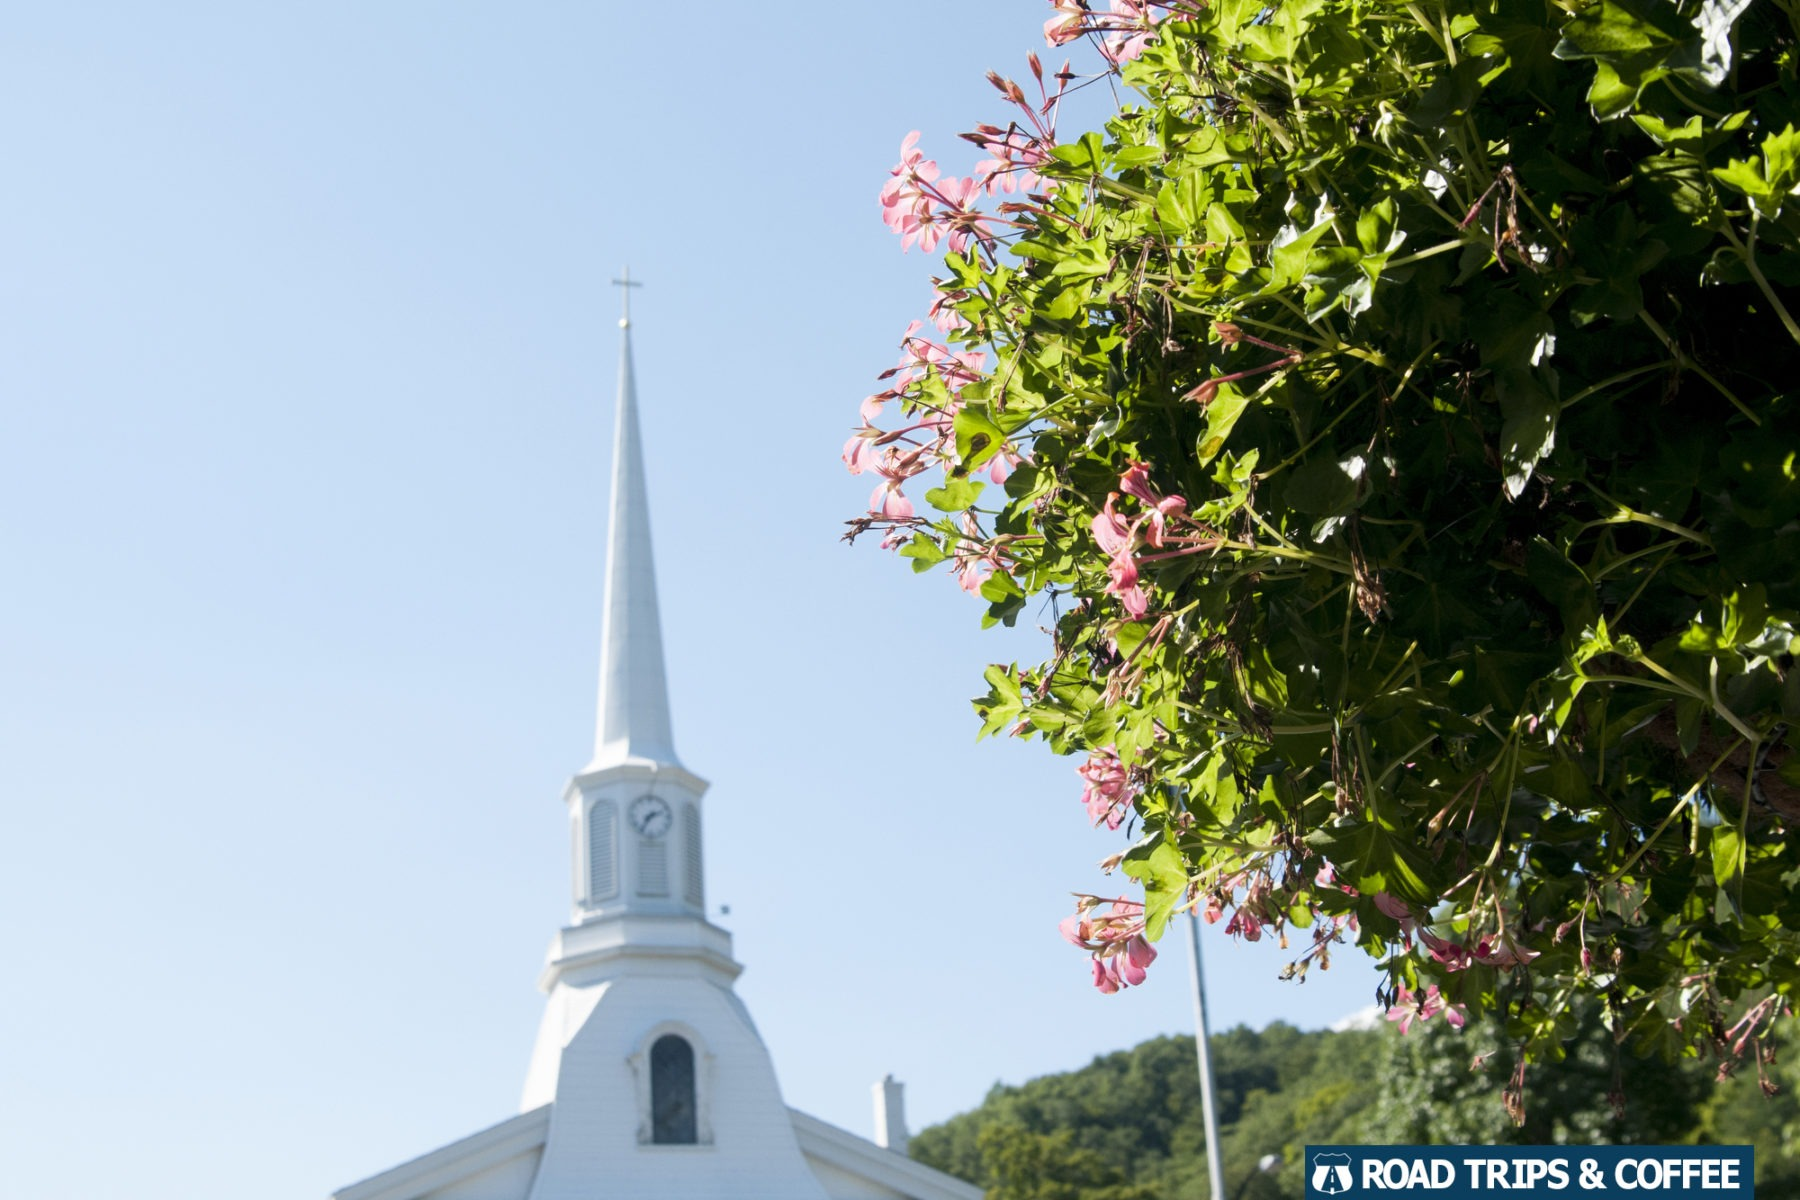 Beautiful blooming flowers and a towering church steeple in downtown Hammondsport, New York